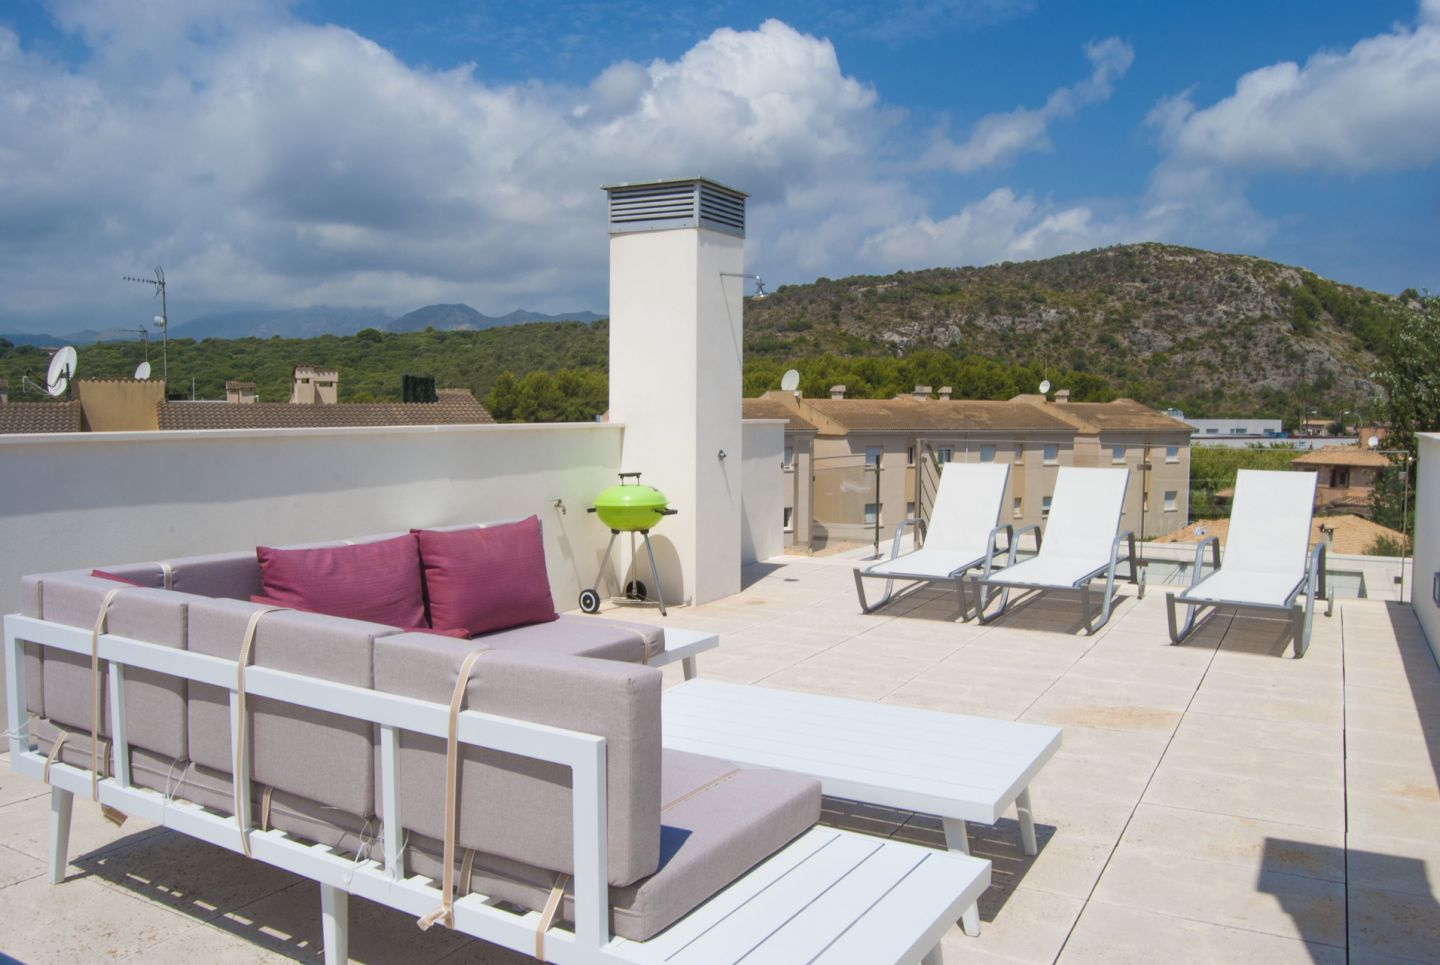 3 Bed Duplex for sale in PUERTO POLLENSA 0